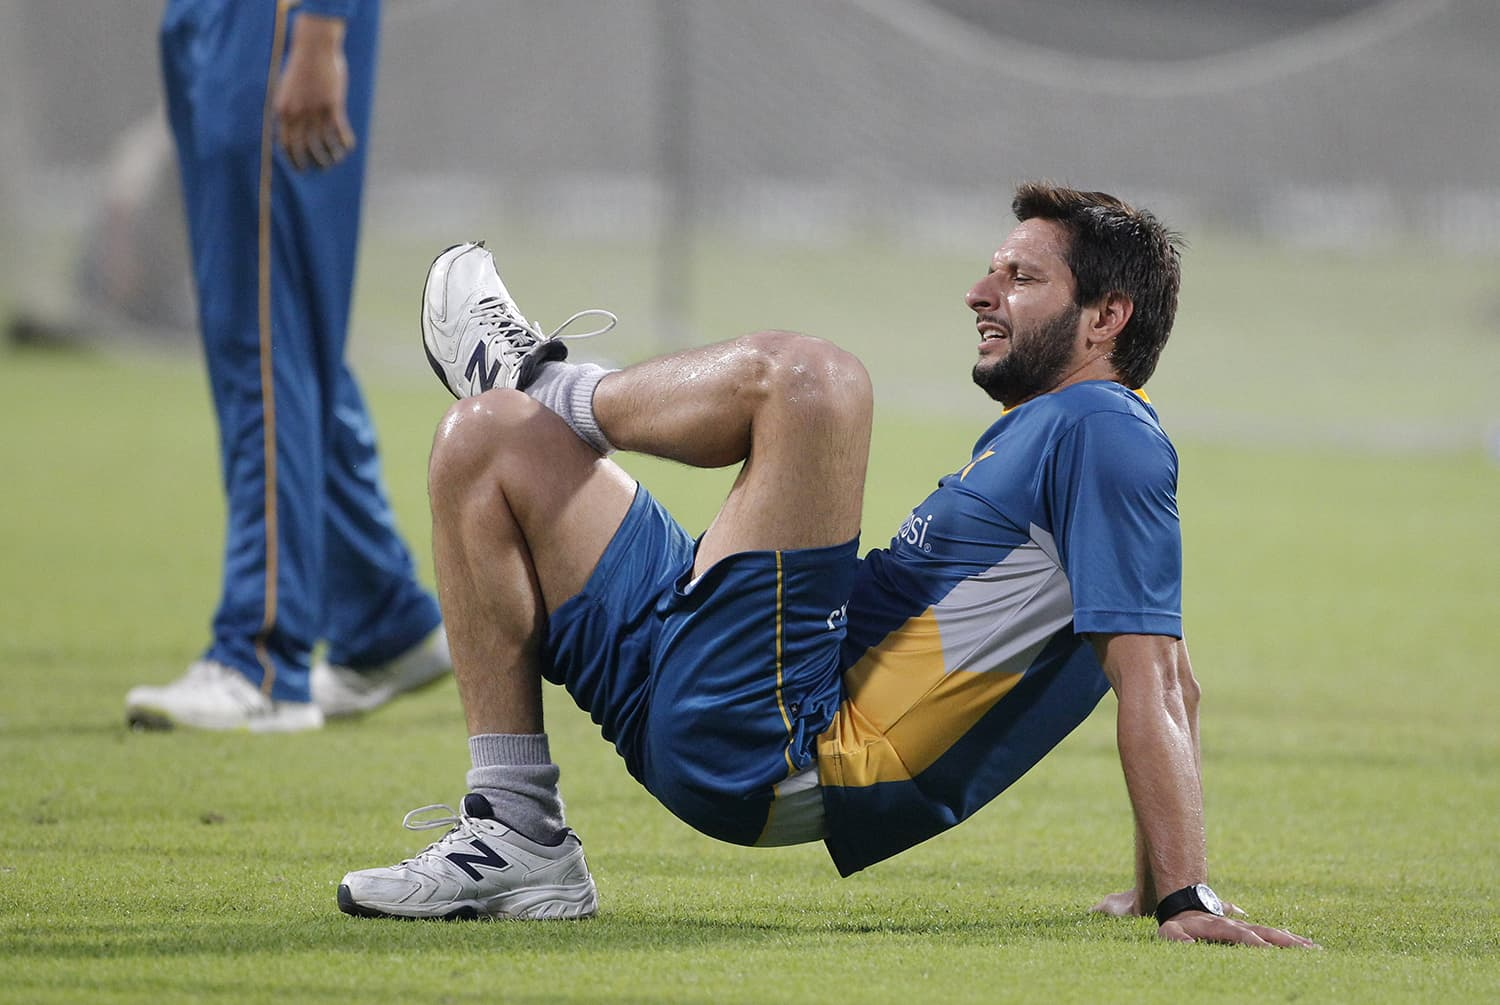 Afridi warms up during a training session ahead of Pakistan's World T20 match against India in Kolkata. — AP